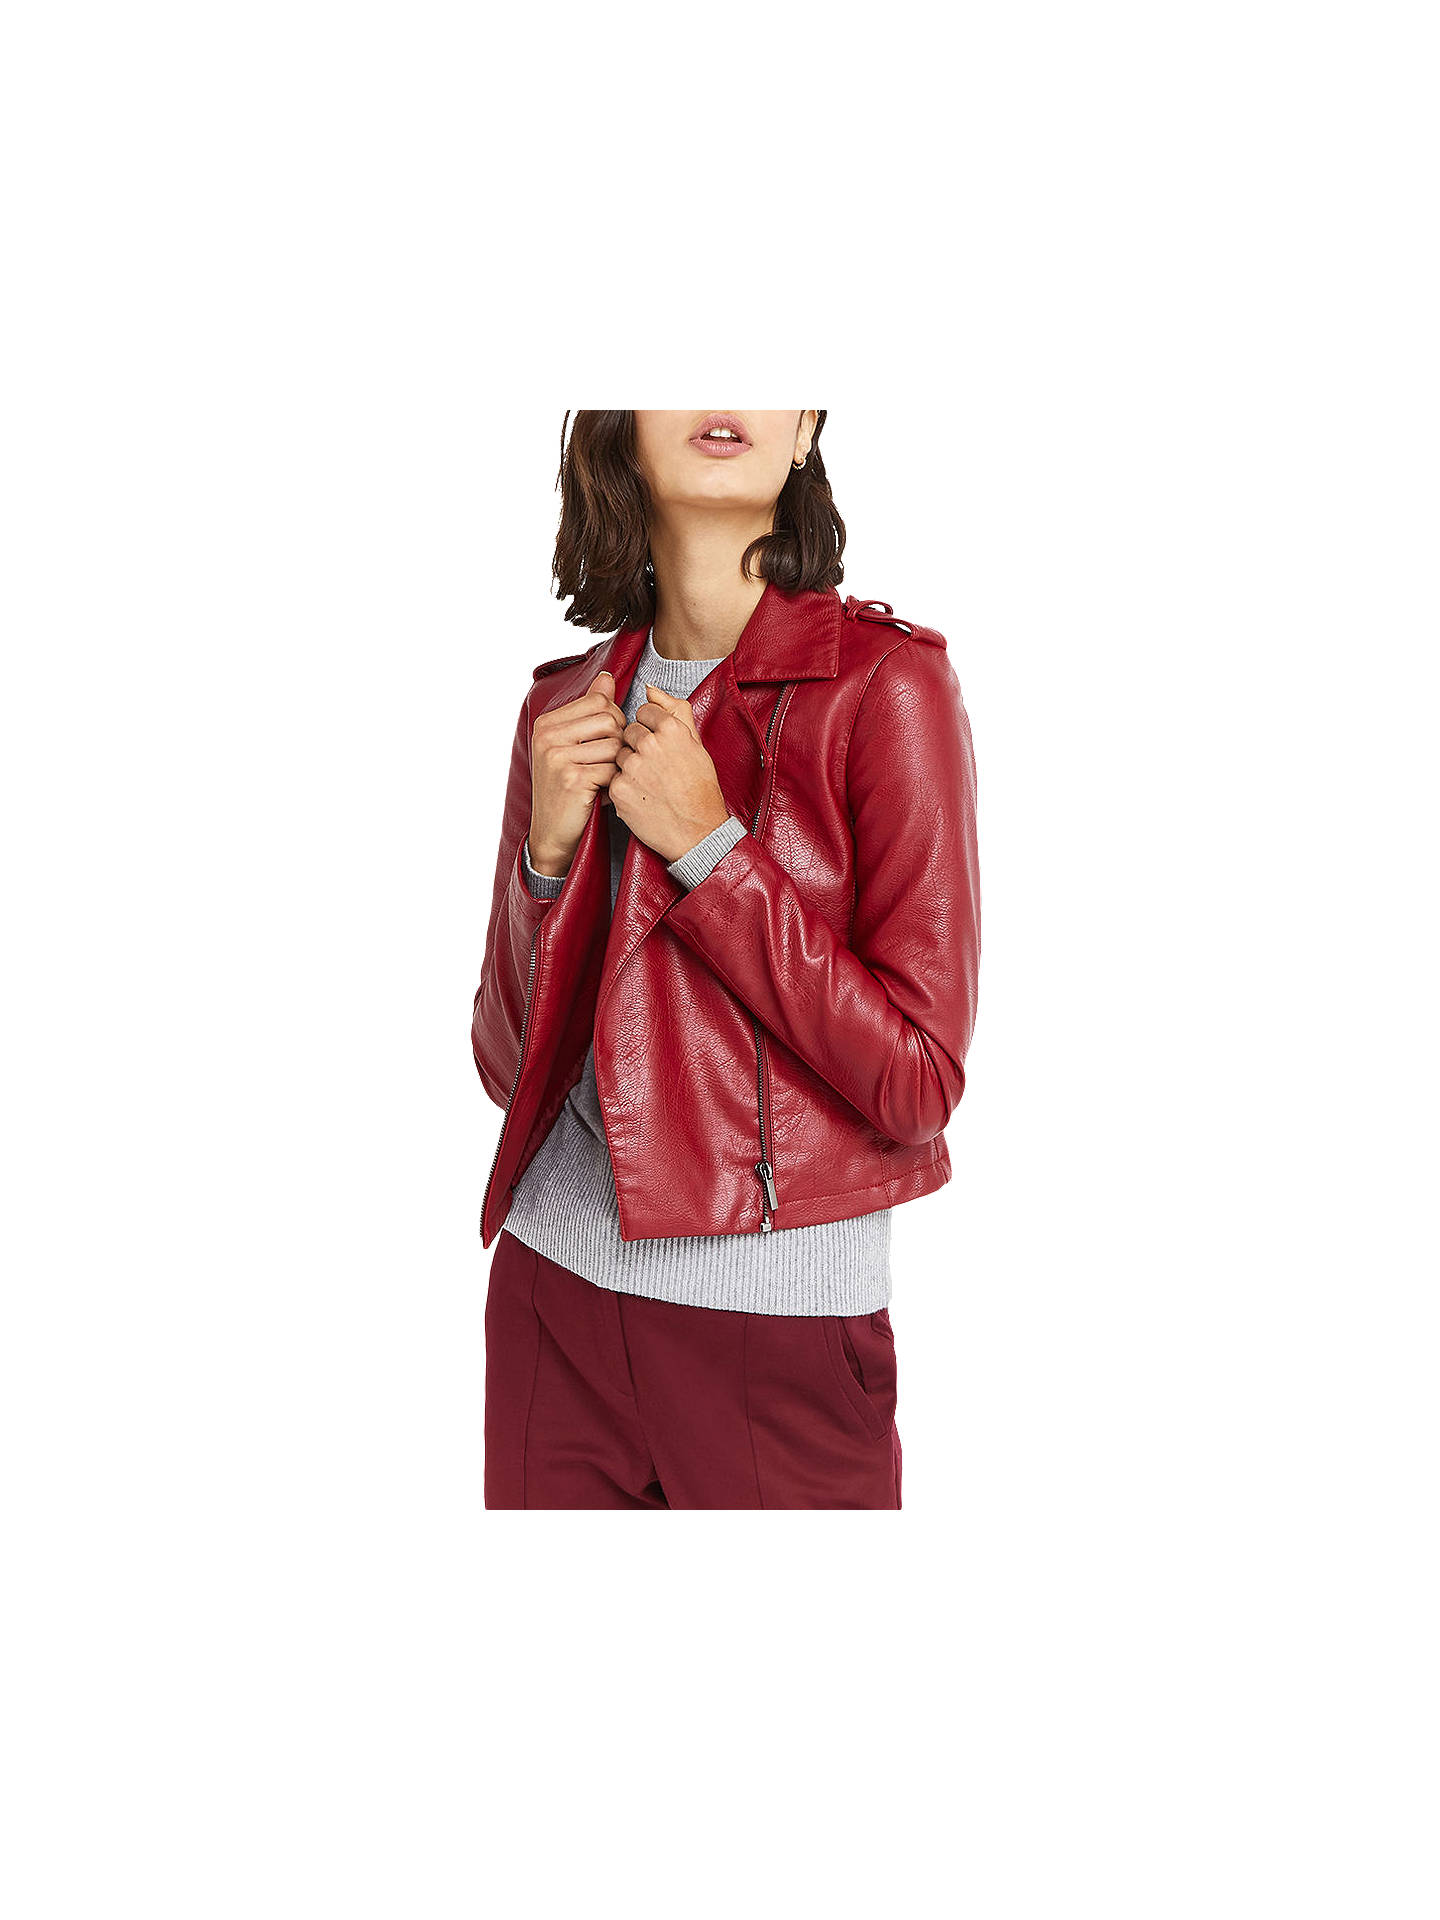 1402fc38267b Buy Oasis Lucy Faux Leather Biker Jacket, Burgundy, XS Online at  johnlewis.com ...